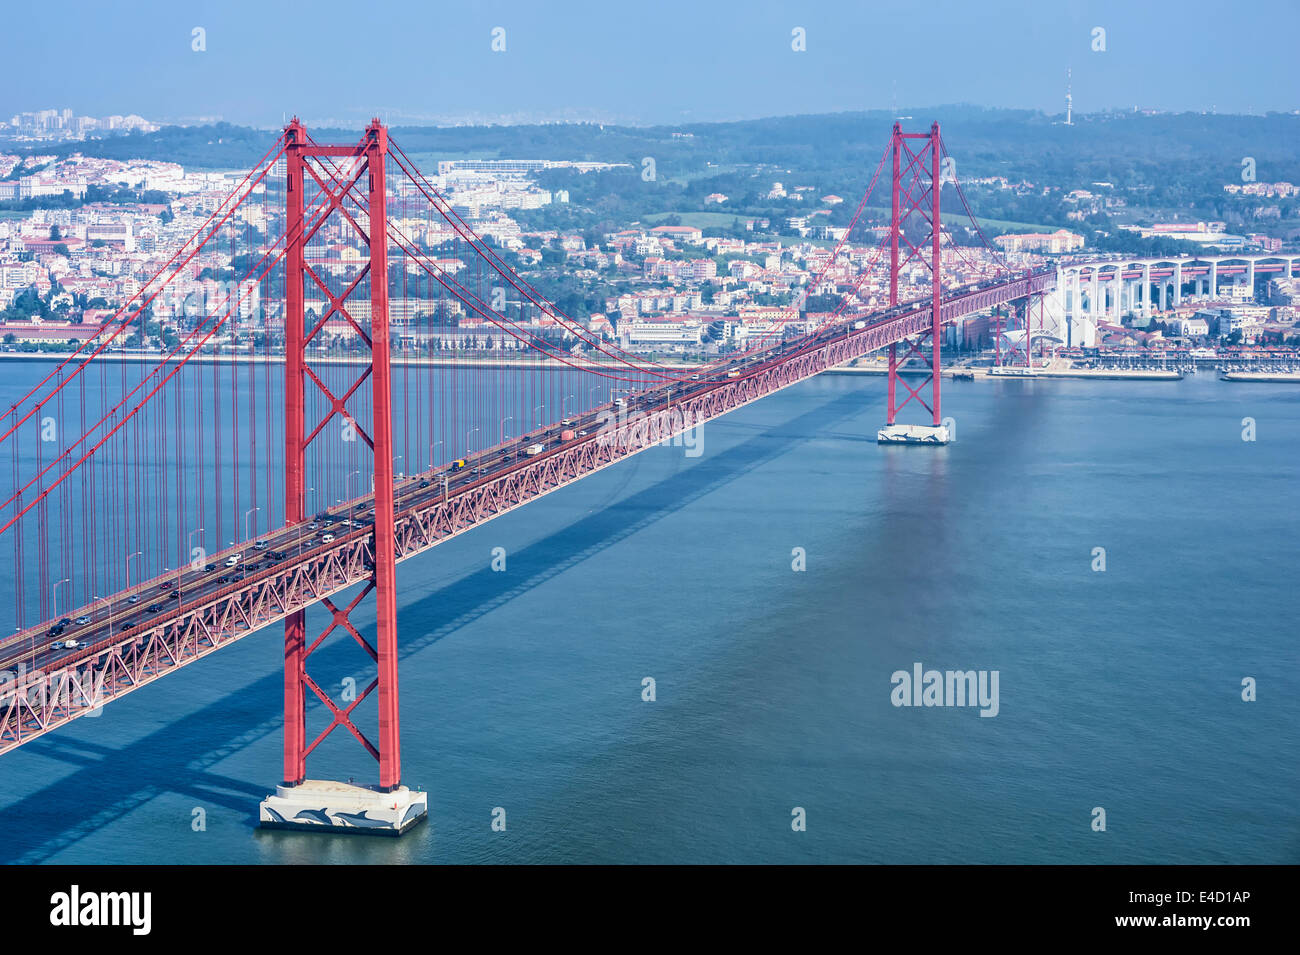 Ponte 25 de Abril (25th of April Bridge) over the Tagus river, Lisbon, Portugal, Europe - Stock Image